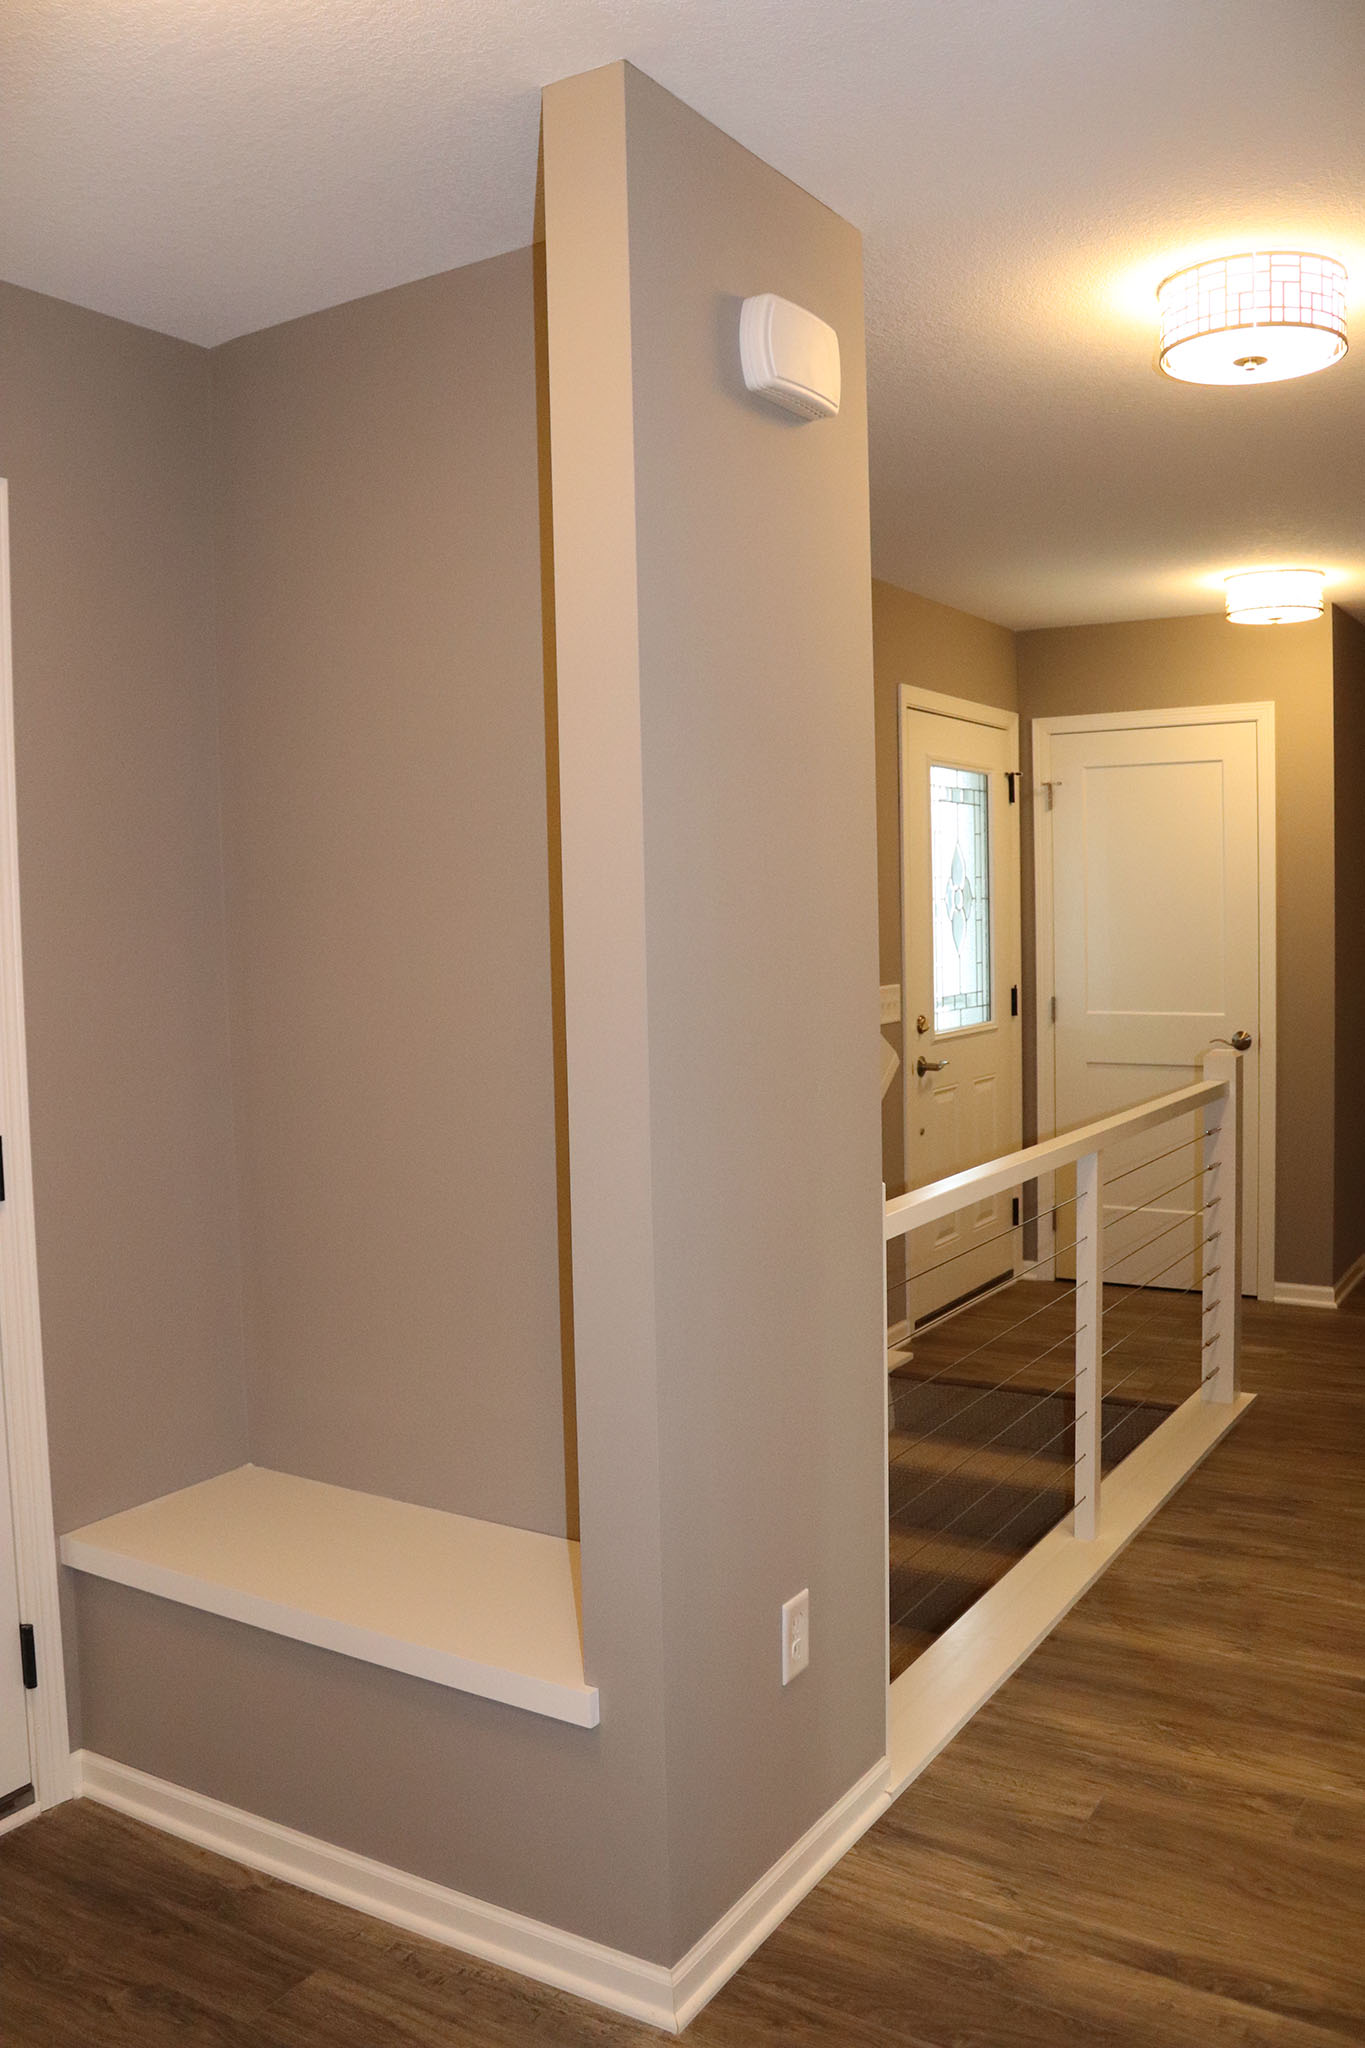 Twin home entry with bench and cable rail